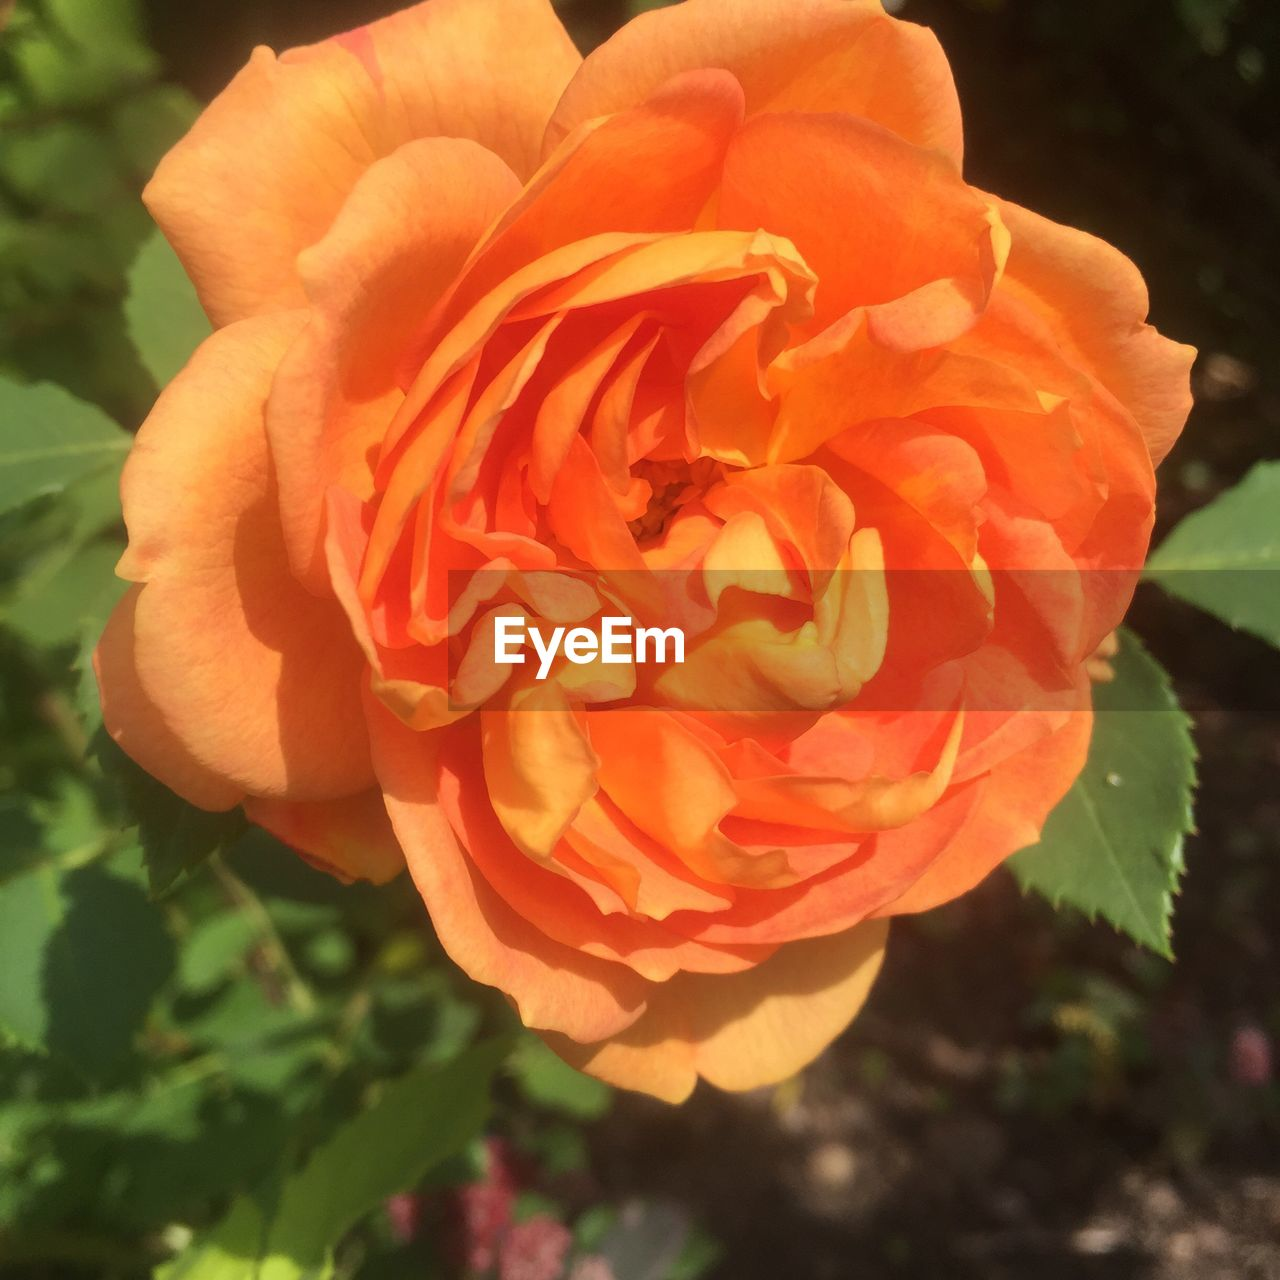 flower, petal, nature, beauty in nature, flower head, fragility, freshness, plant, growth, outdoors, blooming, close-up, no people, focus on foreground, rose - flower, day